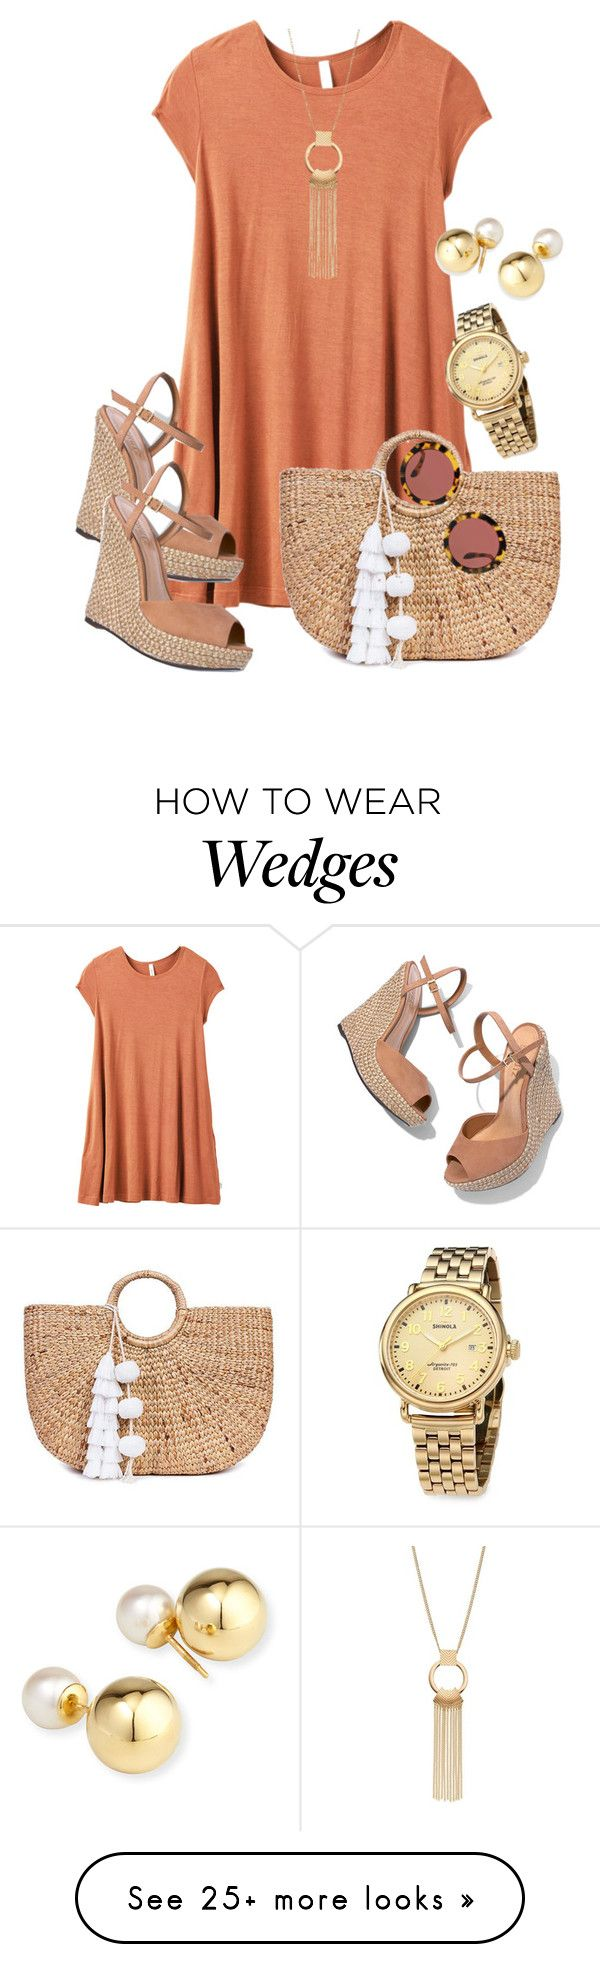 """""""Casual Wear - Quick Dressing : Casually Put Together"""" by sonyastyle on Polyvore featuring RVCA, Schutz, JADE TRIBE, Yoko London, Shinola and Miu Miu"""